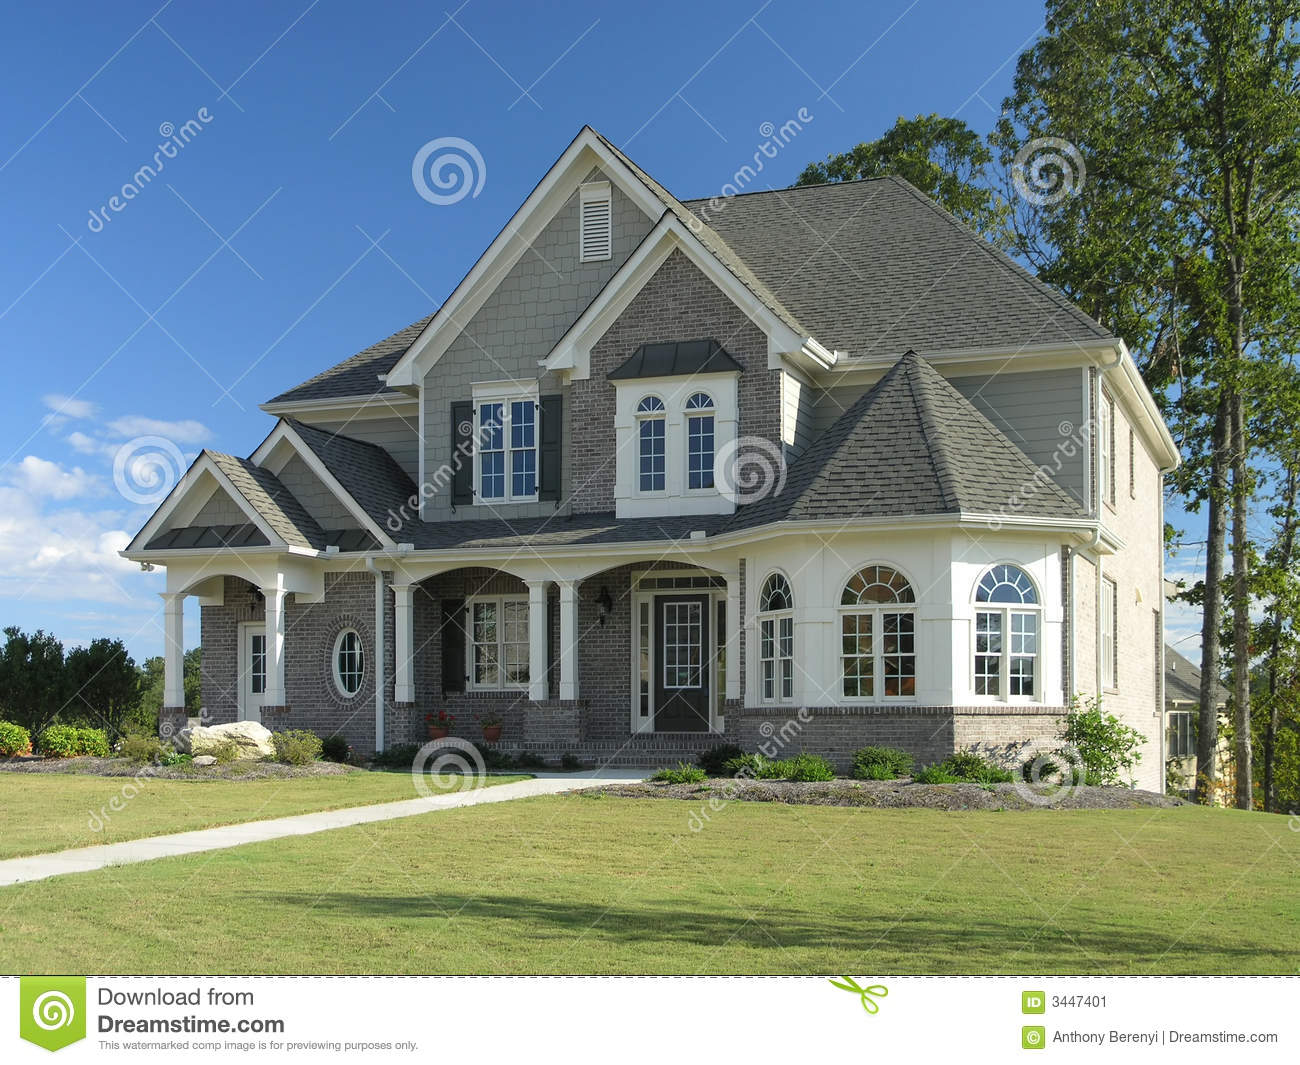 Luxury Home Exterior 56 Stock Image Image Of Fancy